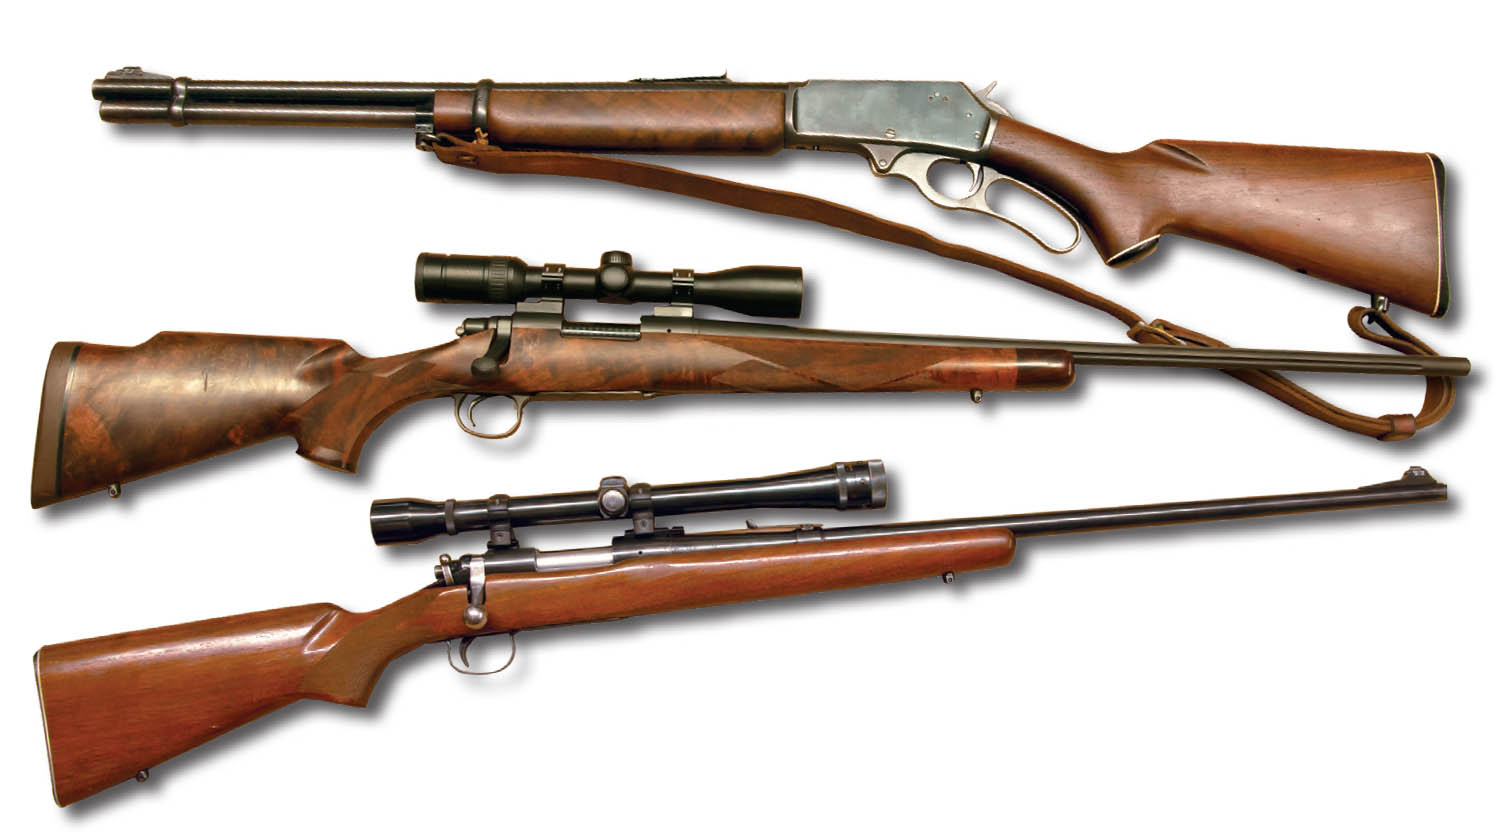 These rifles include (top to bottom) a cherished 1958 Marlin 336 .30-30, a Remington Custom Shop Model 700 6.5 Remington Magnum with a Swarovski Z3 3-9x 36mm scope and a Remington Model 722 .222 Remington with a Weaver K10 scope.